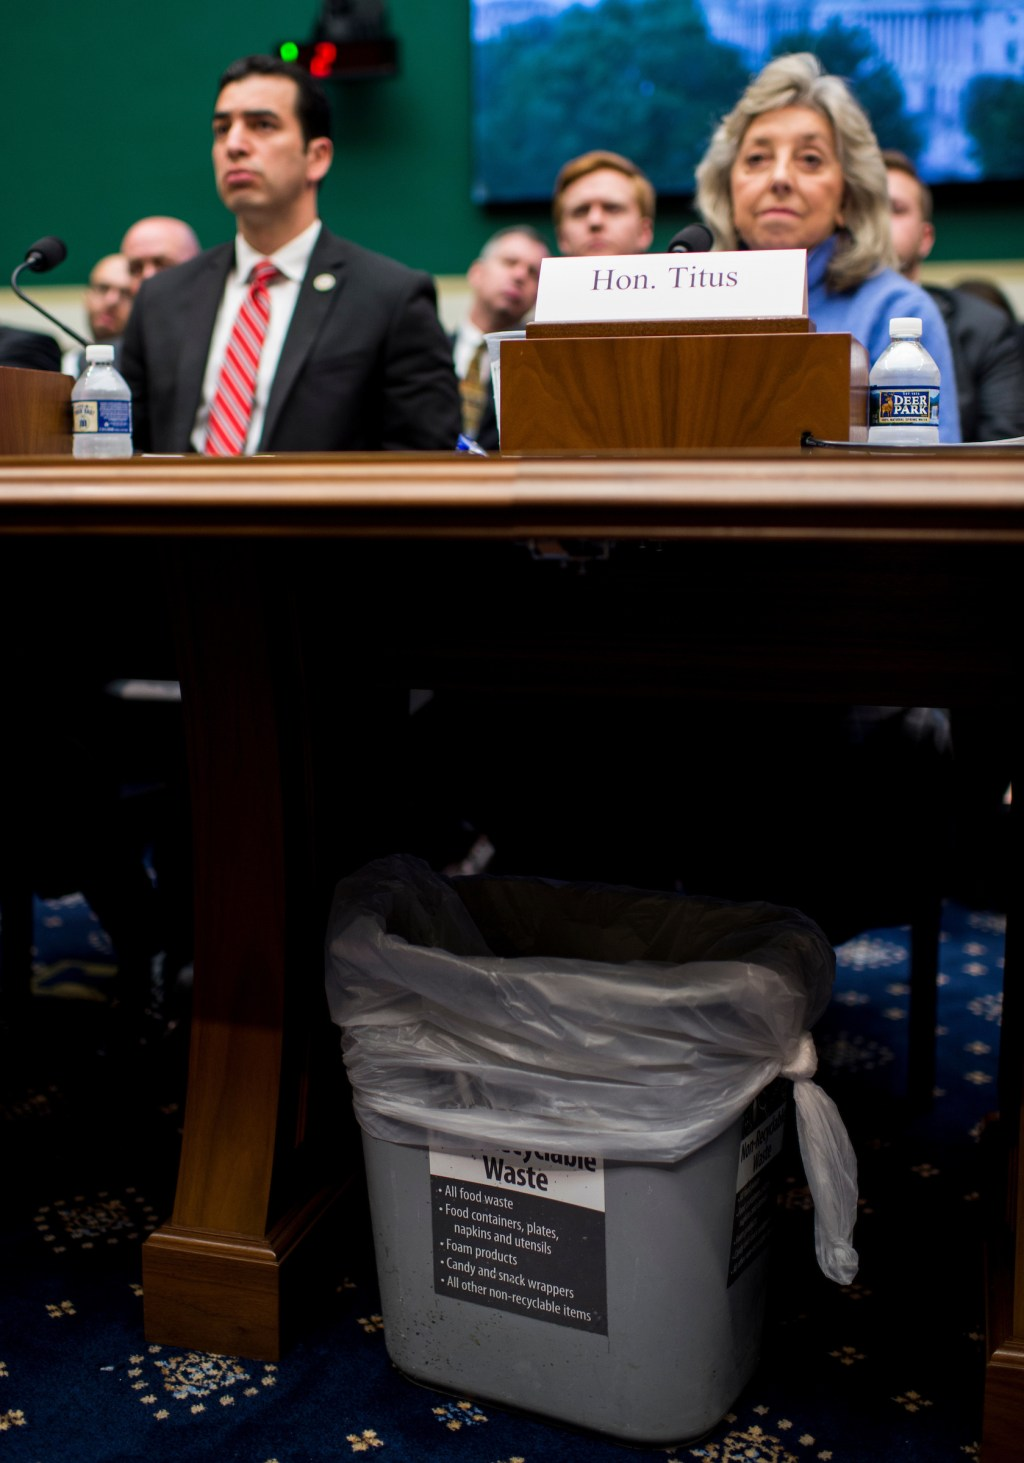 UNITED STATES - APRIL 26: A waste basket sits under the witness table as Rep. Ruben Kihuen, D-Nev., and Rep. Dina Titus, D-Nev., prepare to make statements in opposition to using Yucca Mountain as a nuclear waste disposal site during the House Committee on Energy and Commerce Subcommittee on Environment hearing on the